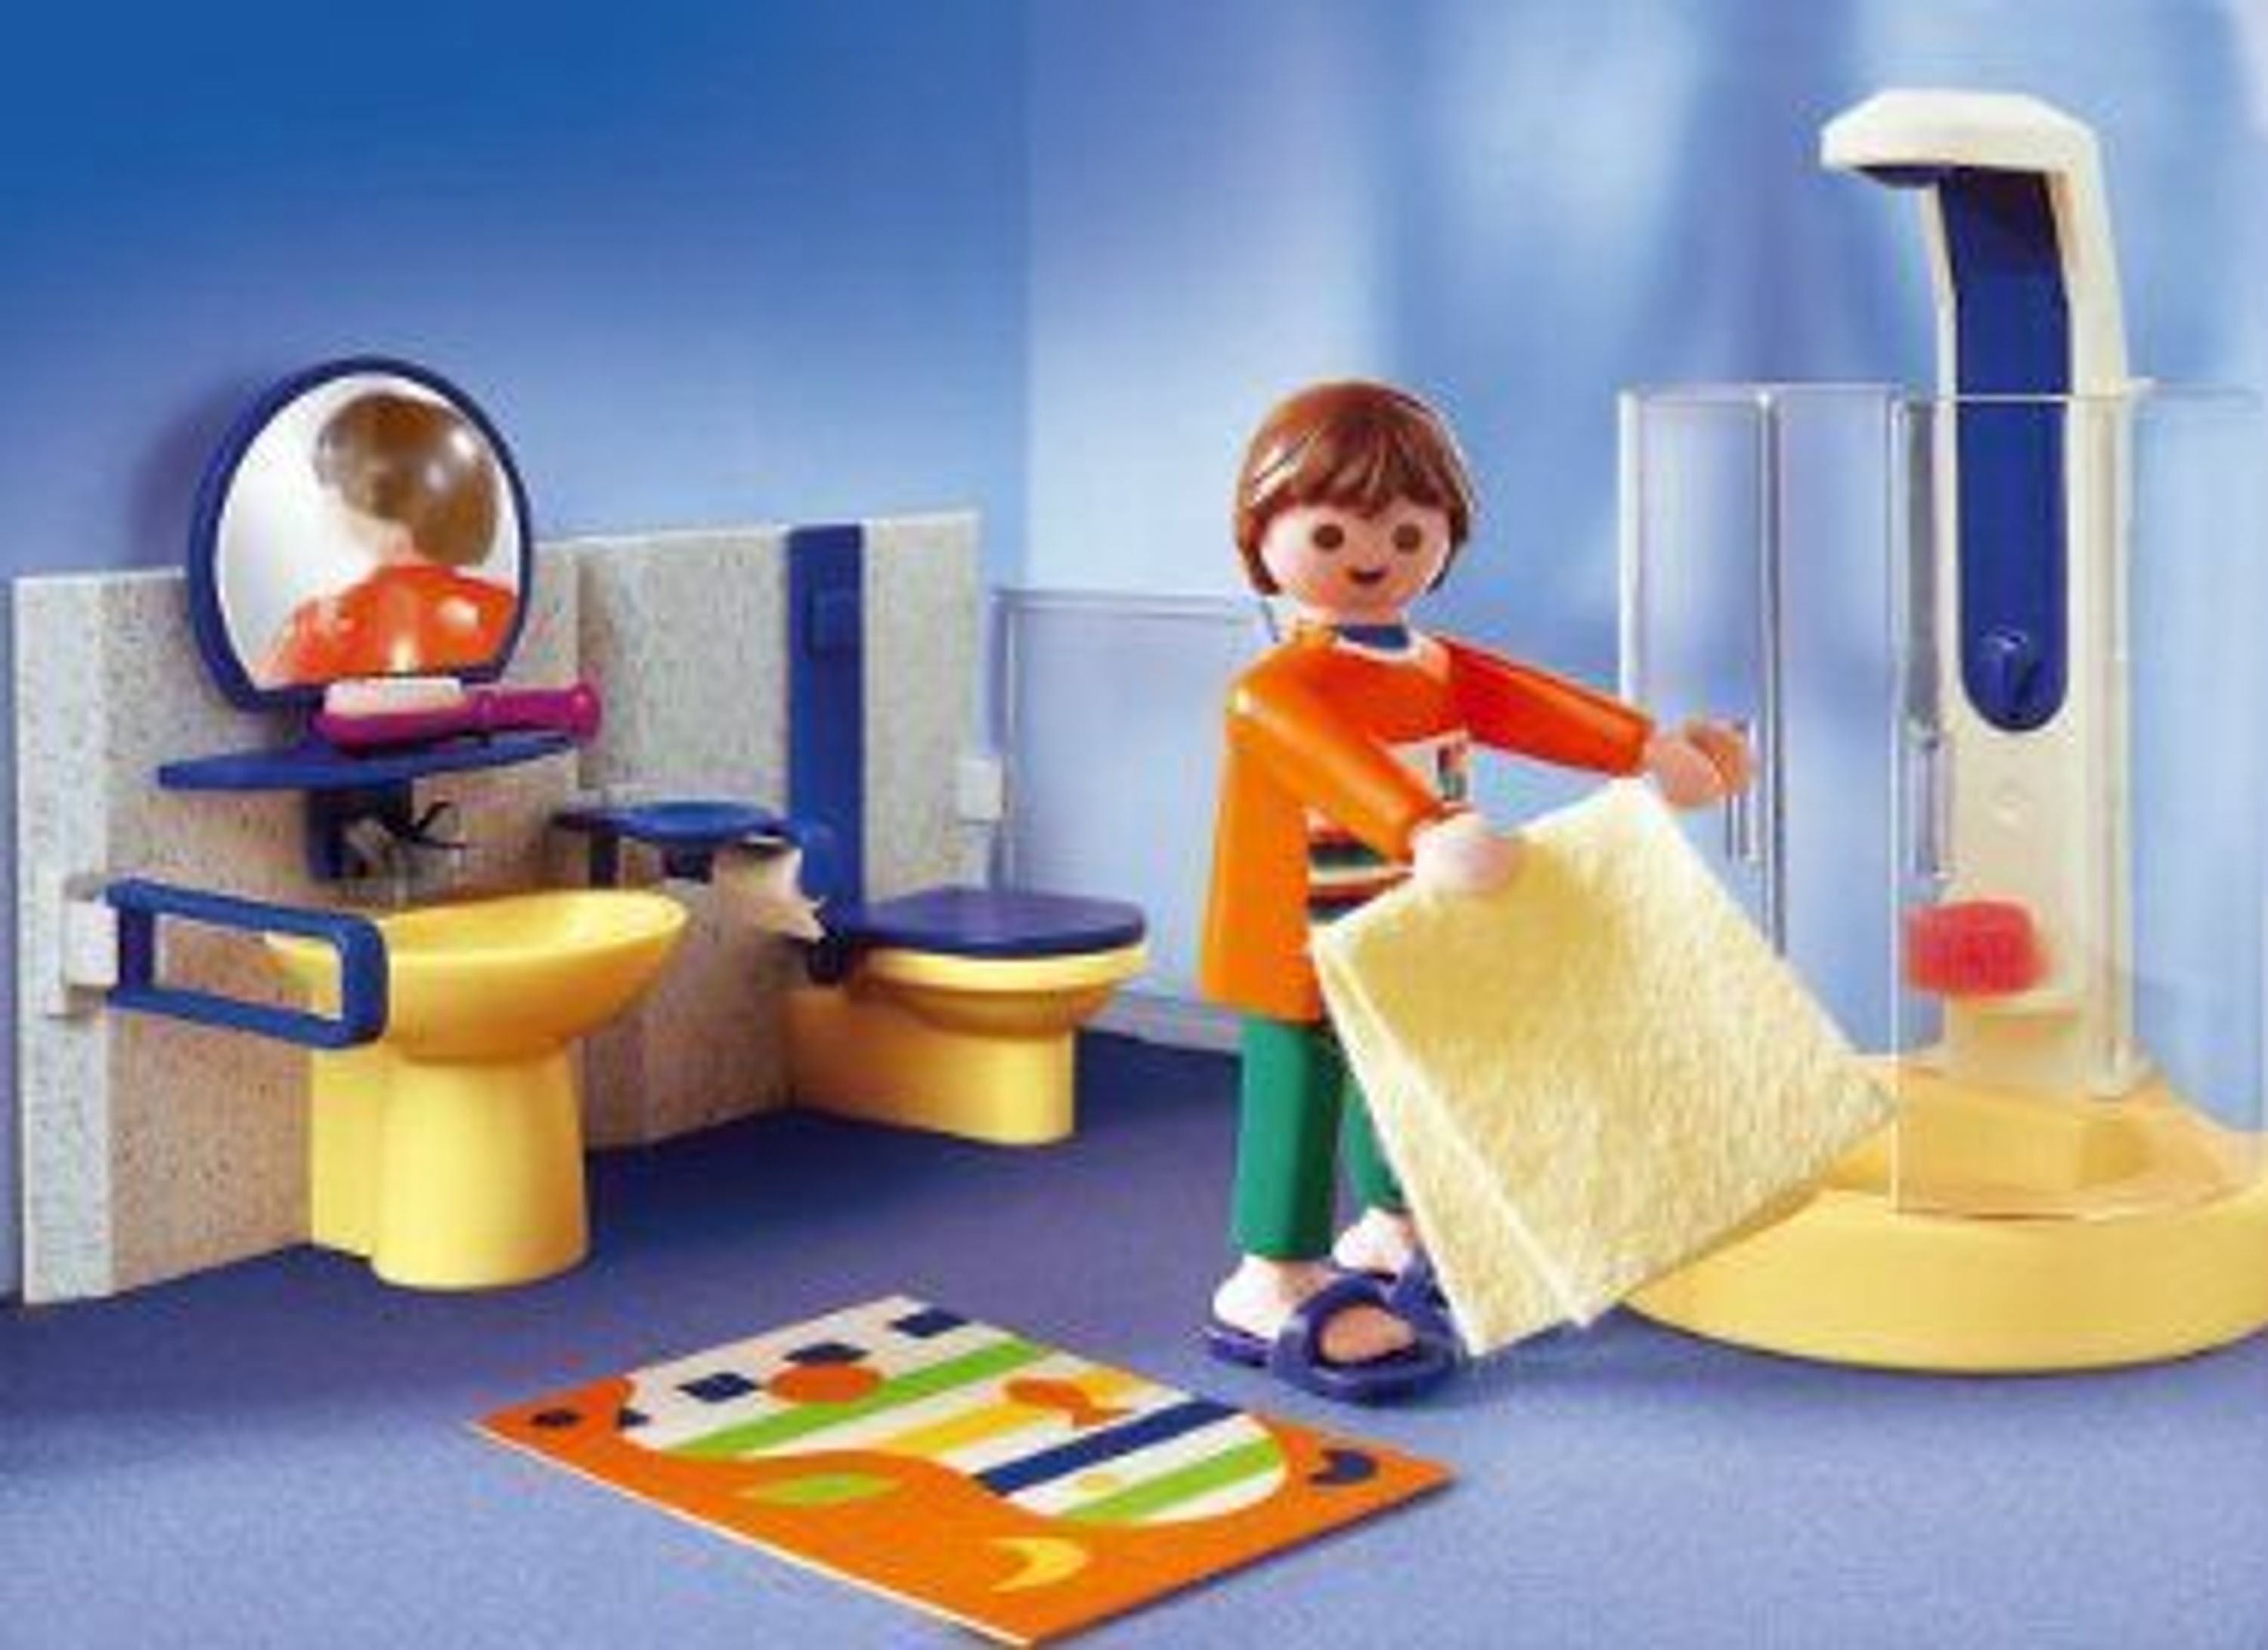 playmobil 3969 bad mit dusche und figur a brause klo waschbecken wc toilette kaufen bei. Black Bedroom Furniture Sets. Home Design Ideas